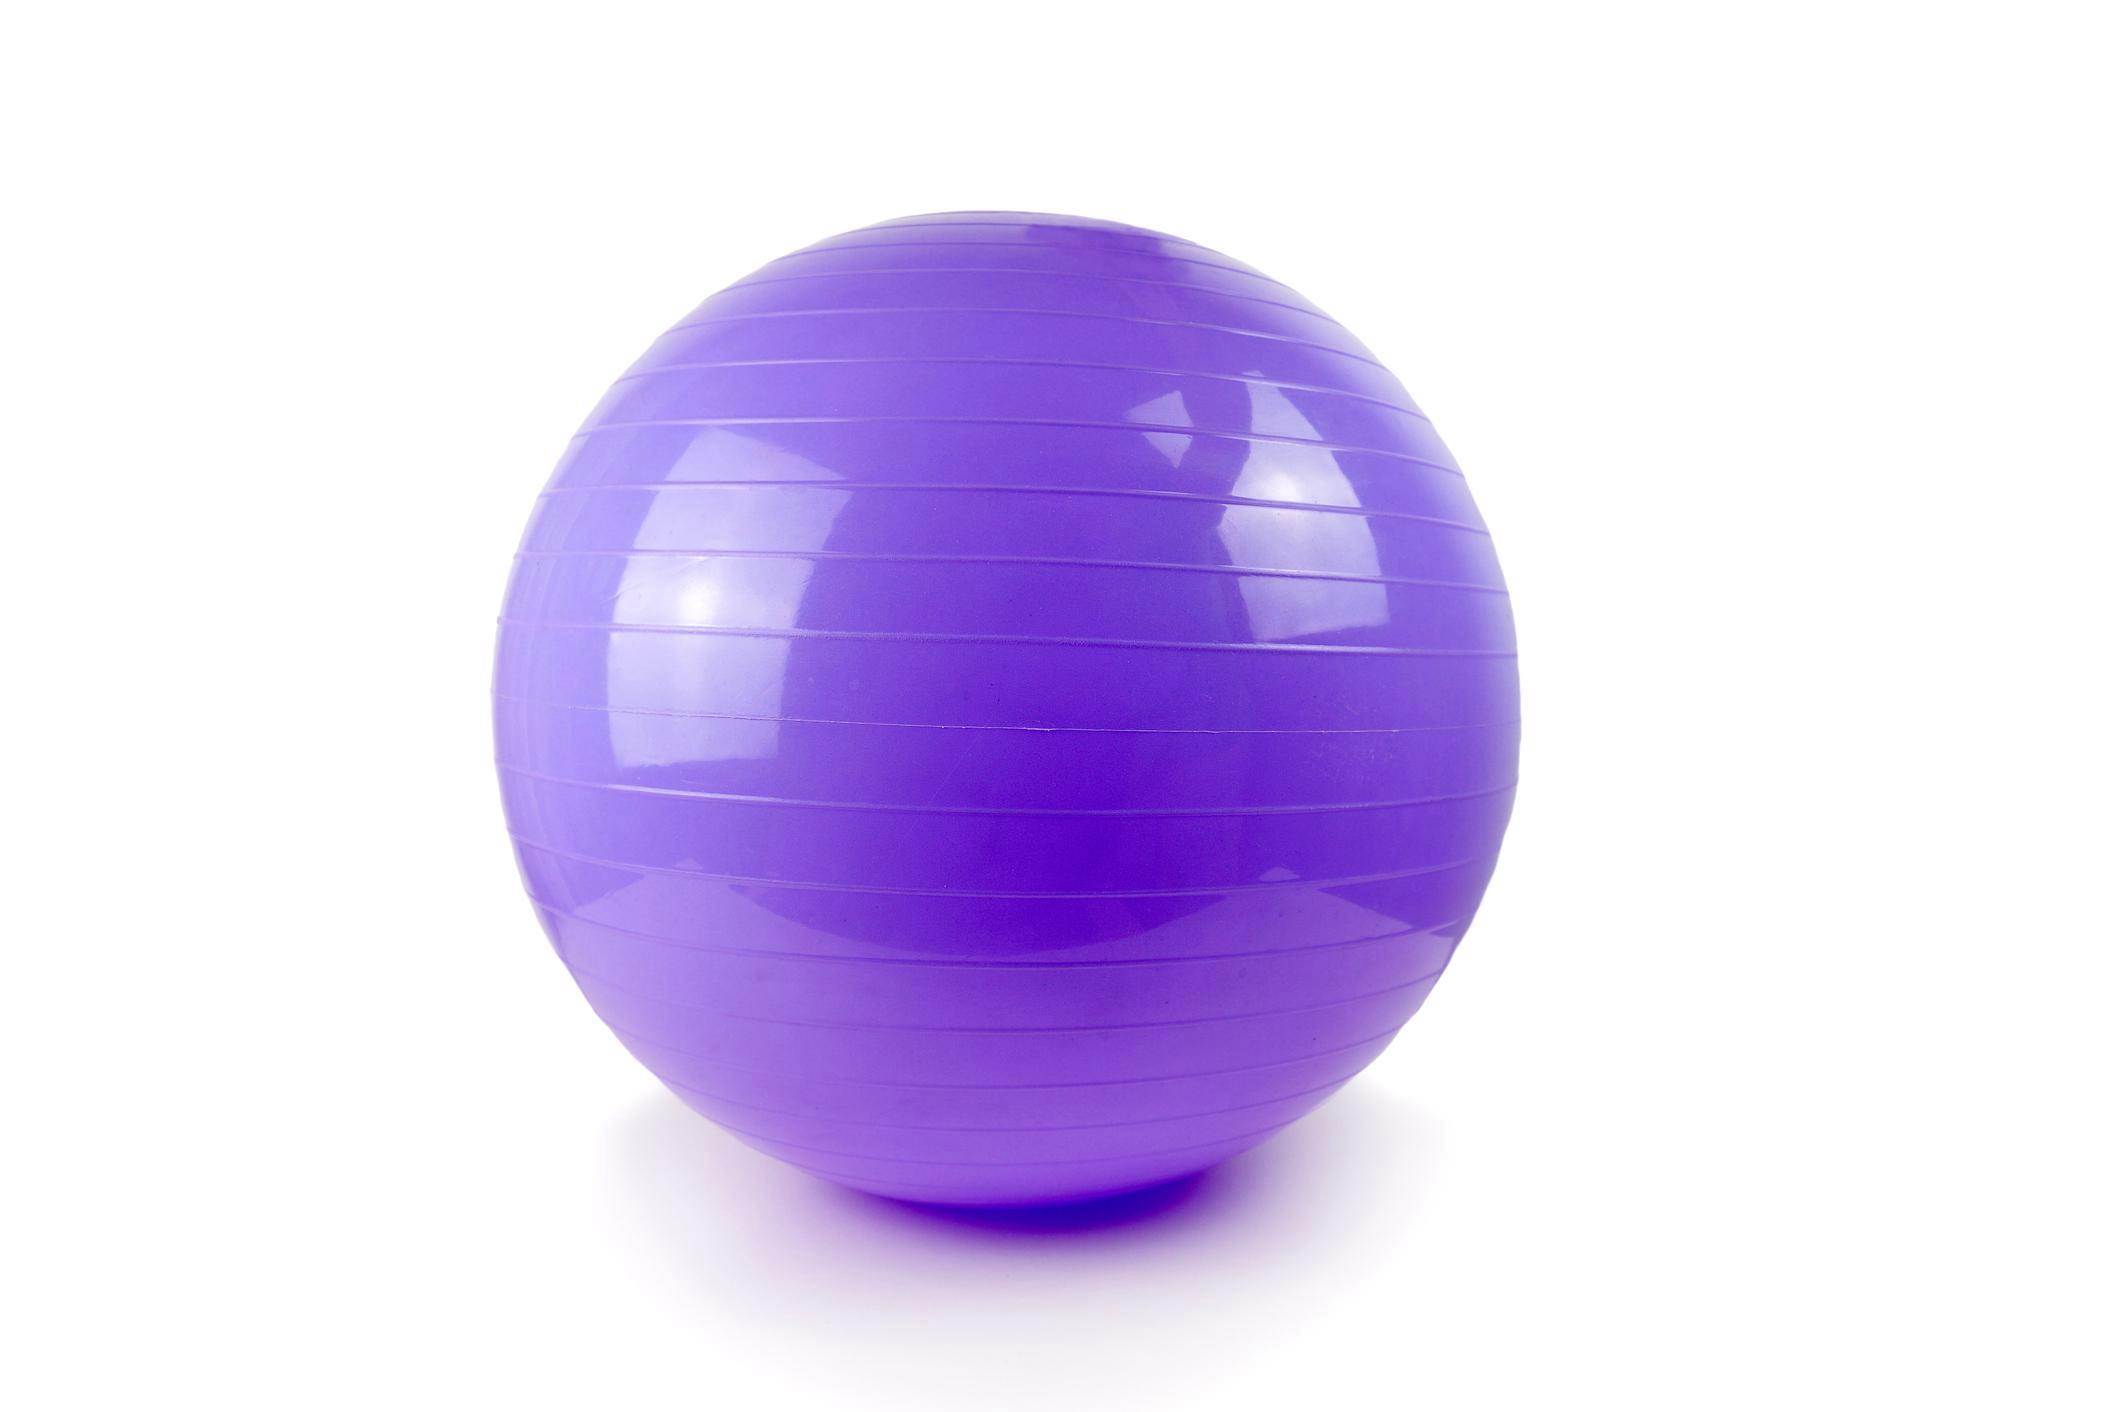 Sex on an exercise ball images 73